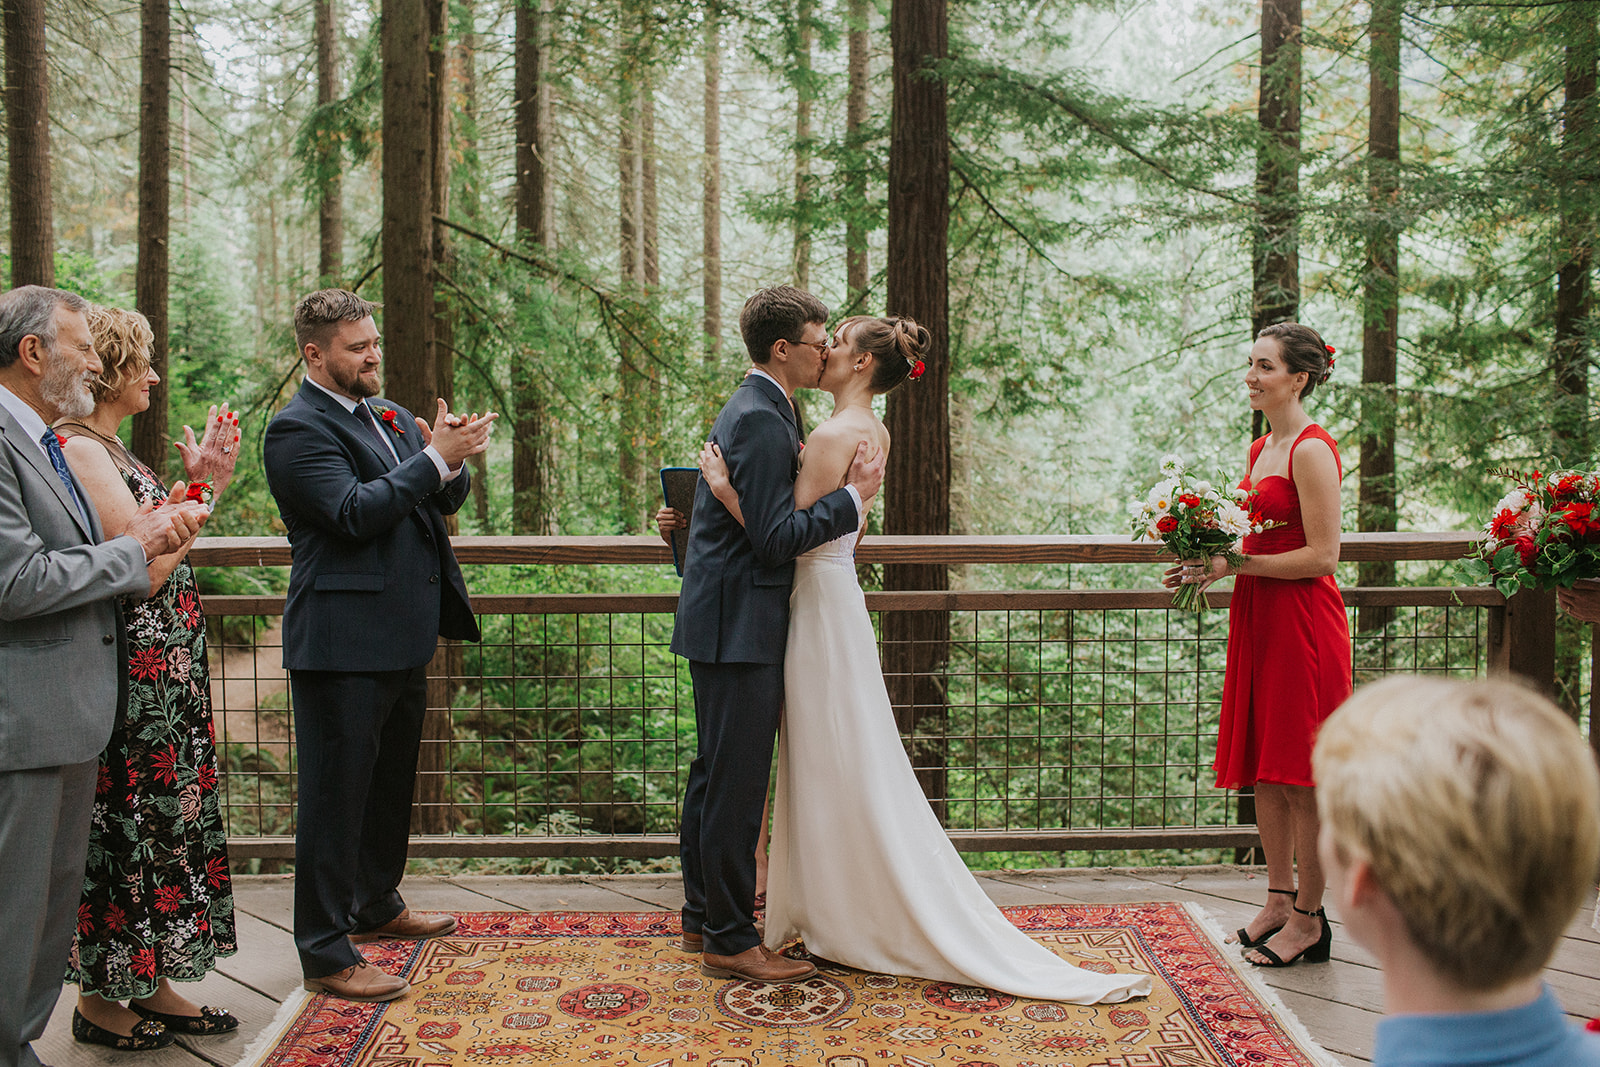 Forest-Park-Wedding-Ceremony-kiss.jpg